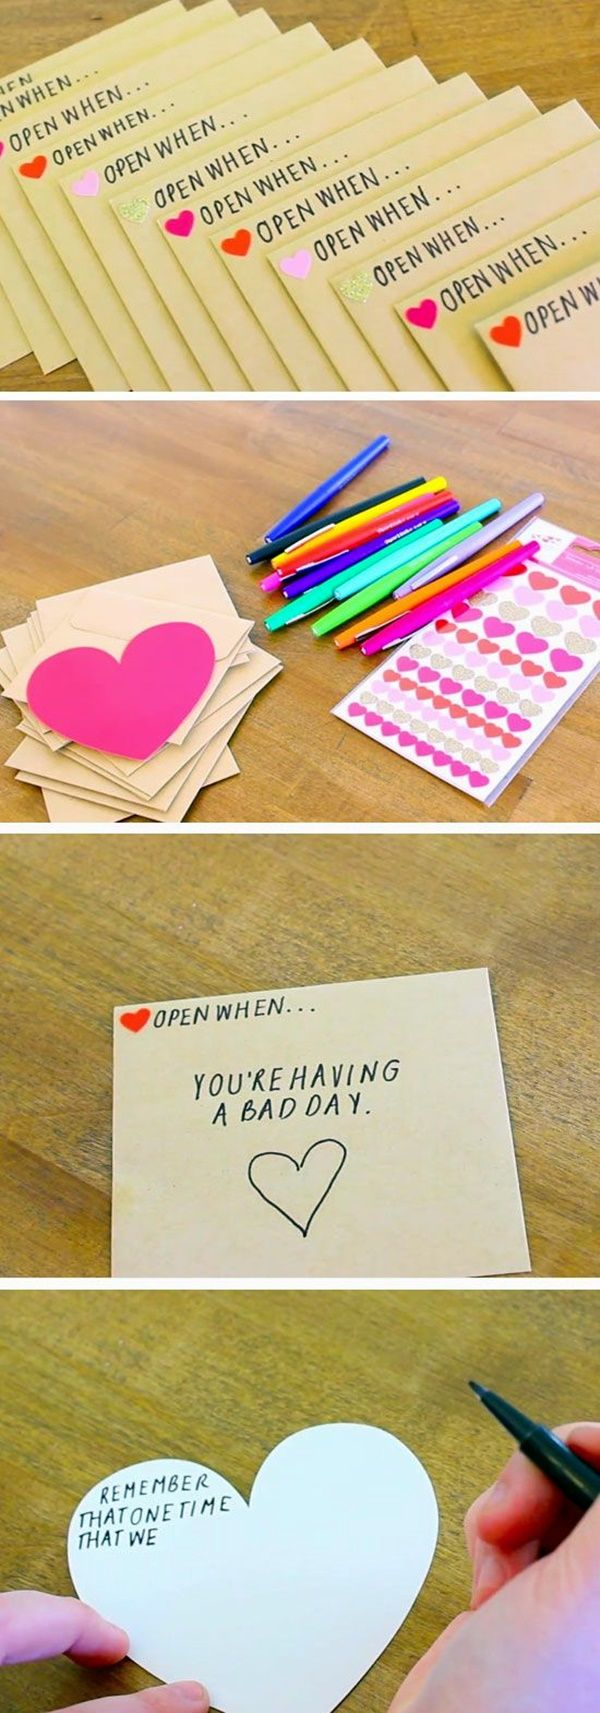 77 Homemade Valentines Day Ideas for Him that're really